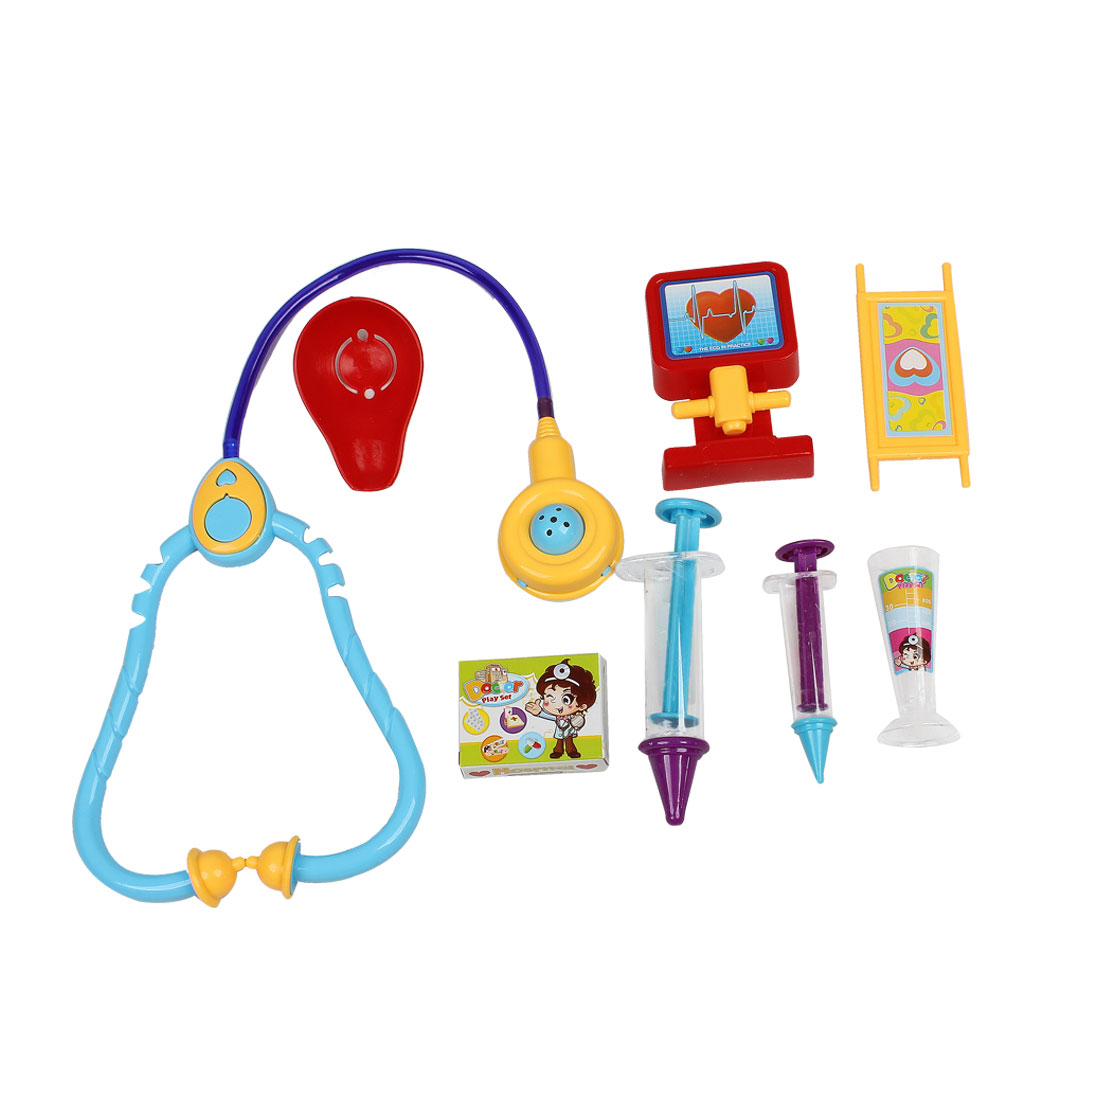 Colorful Plastic Hospital Instrument Educational Toy Plaything Set for Kids